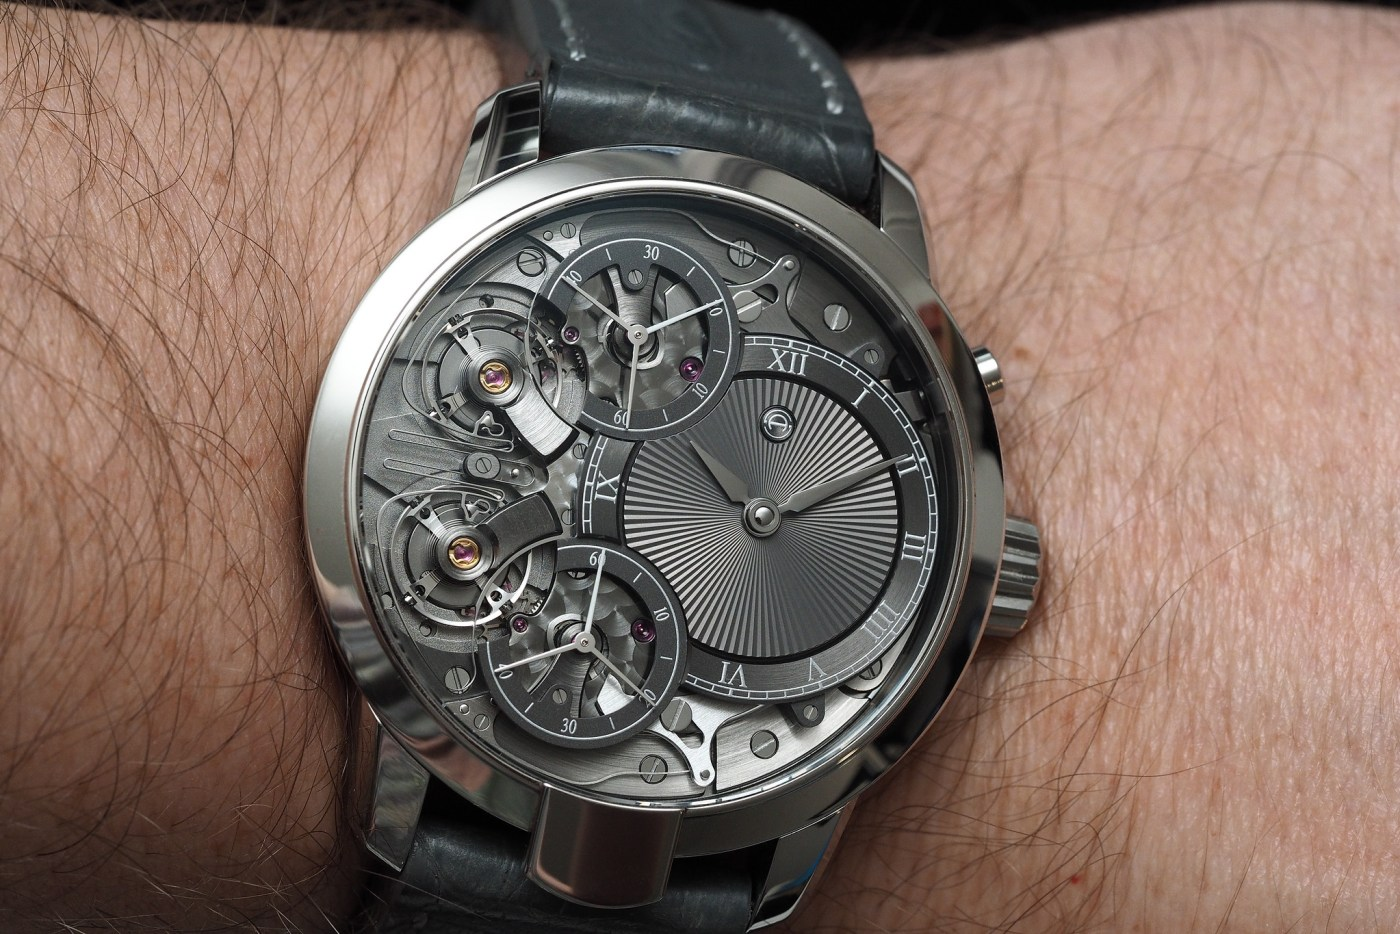 Wristshot of the Armin Strom Mirrored Force Resonance in stainlesss steel